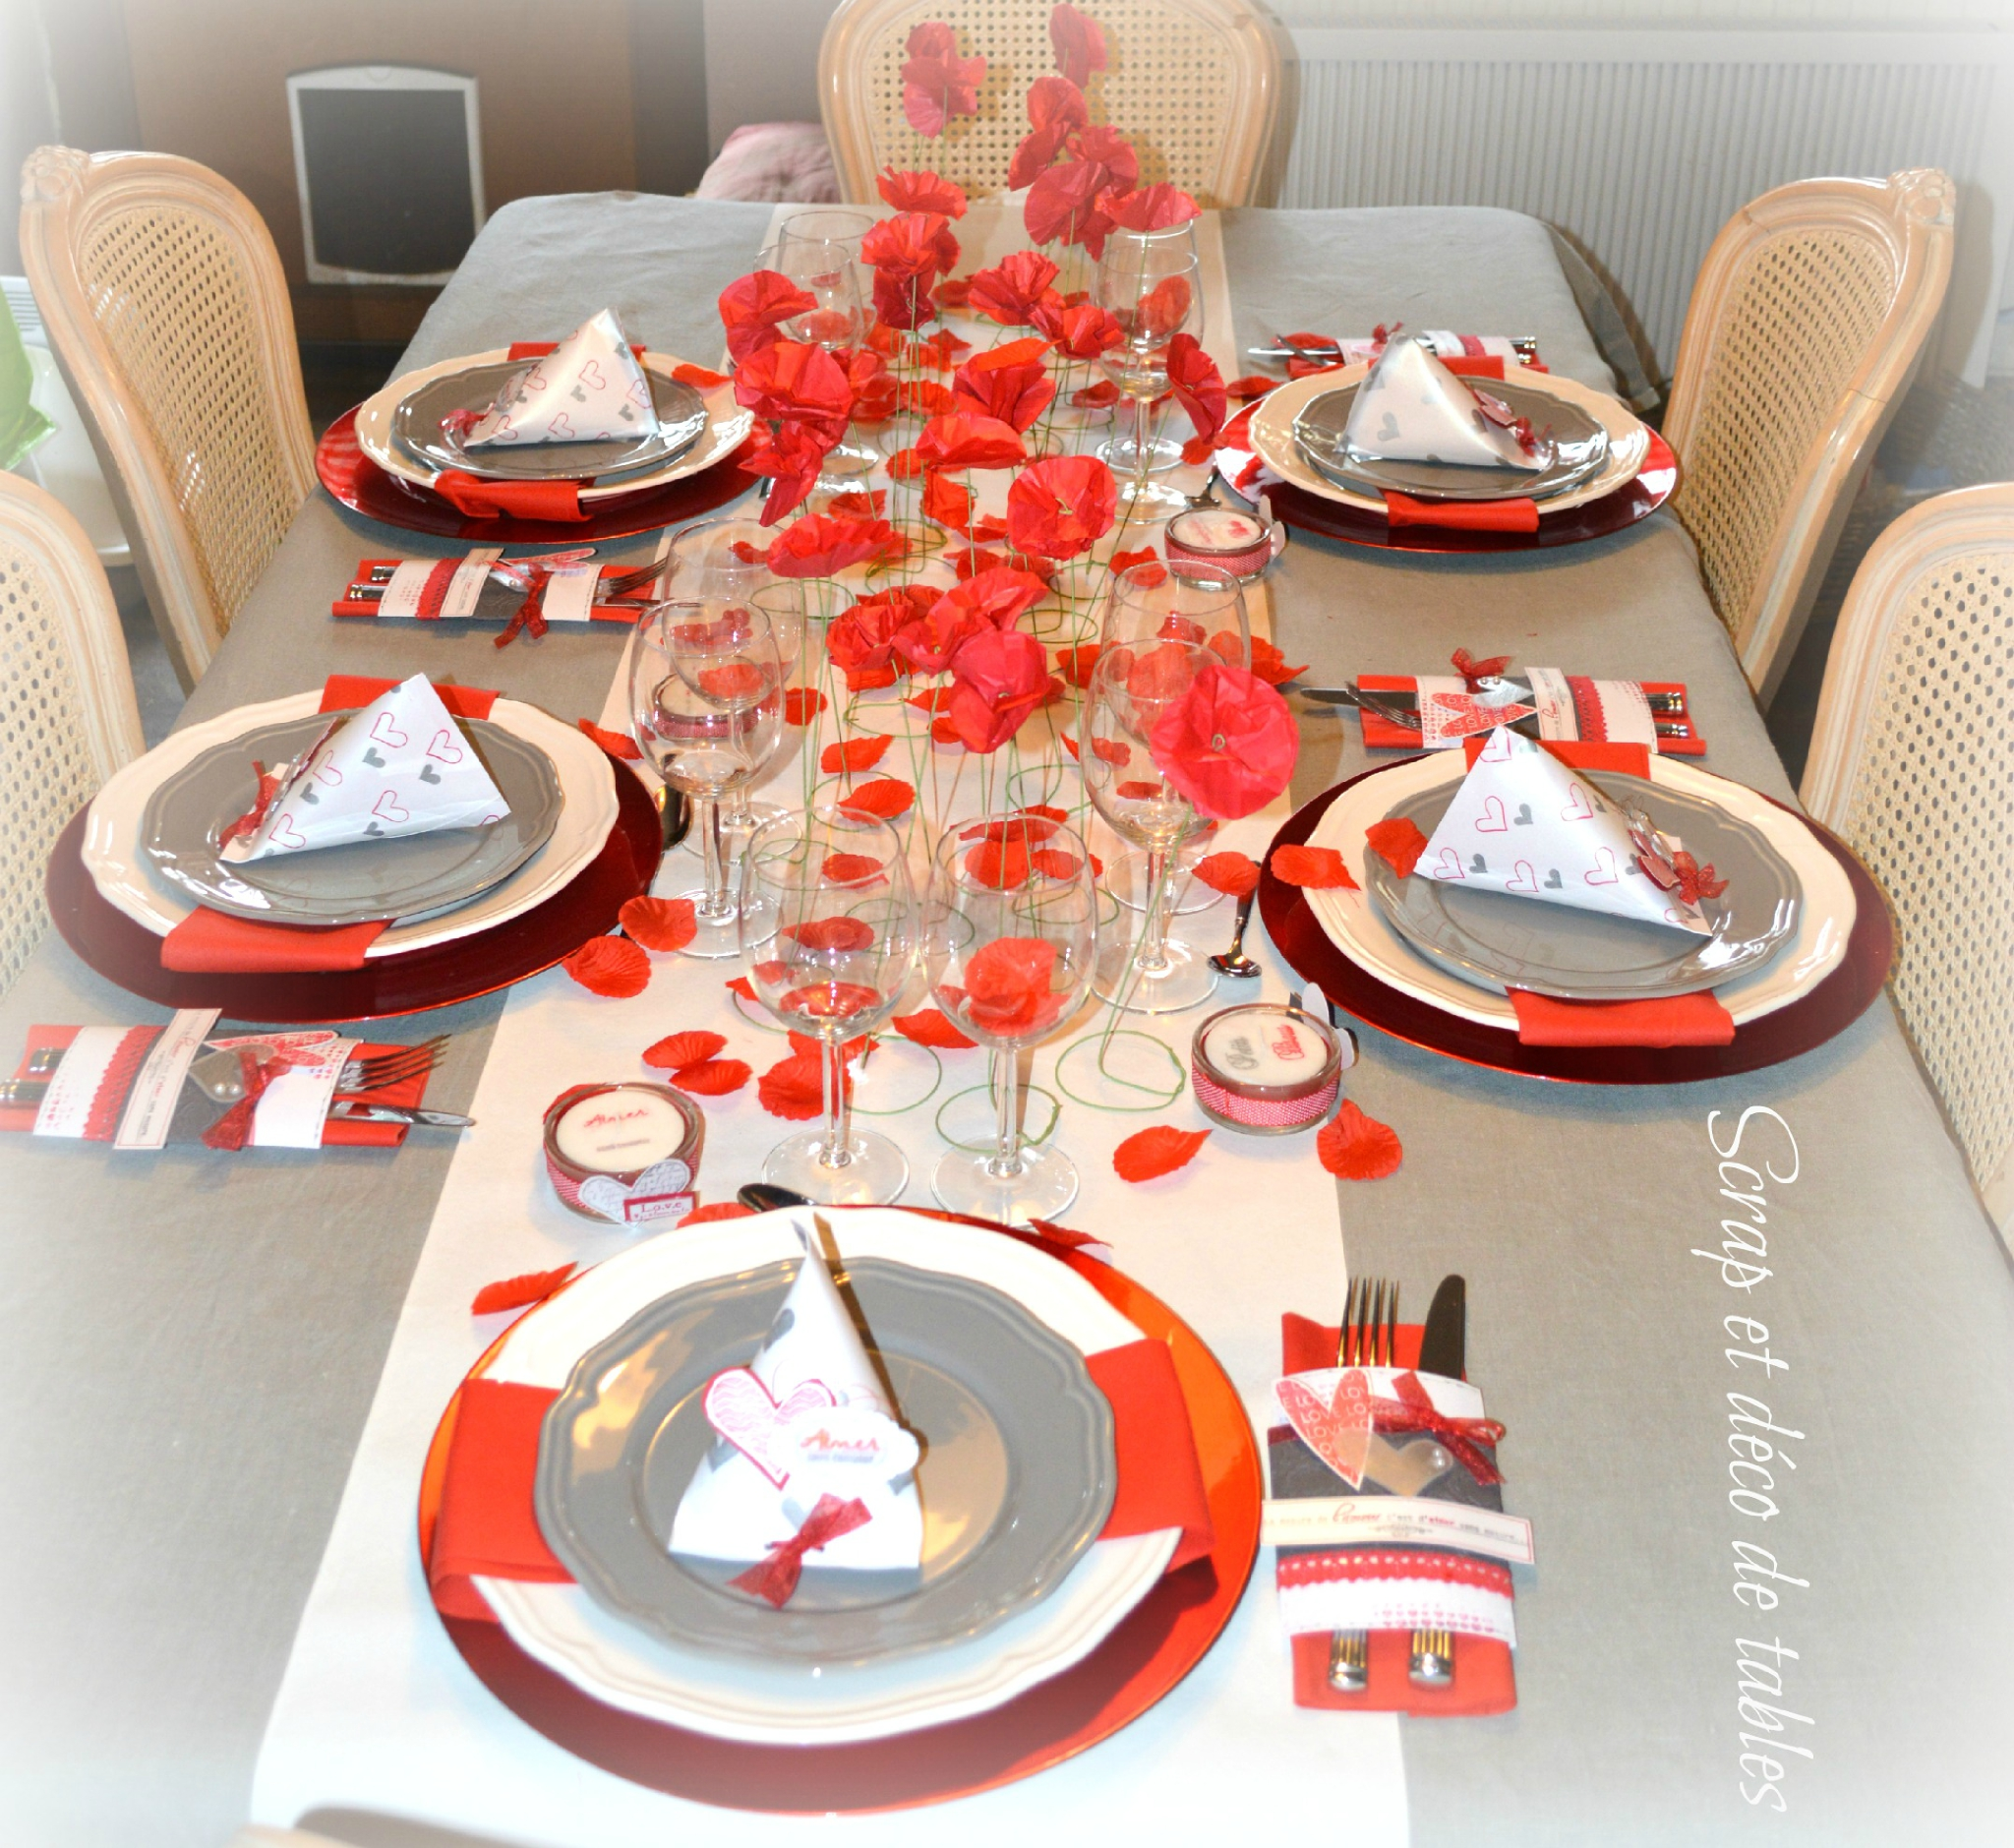 Deco de table saint valentin 2015 scrap et d co de tables for Deco table st valentin